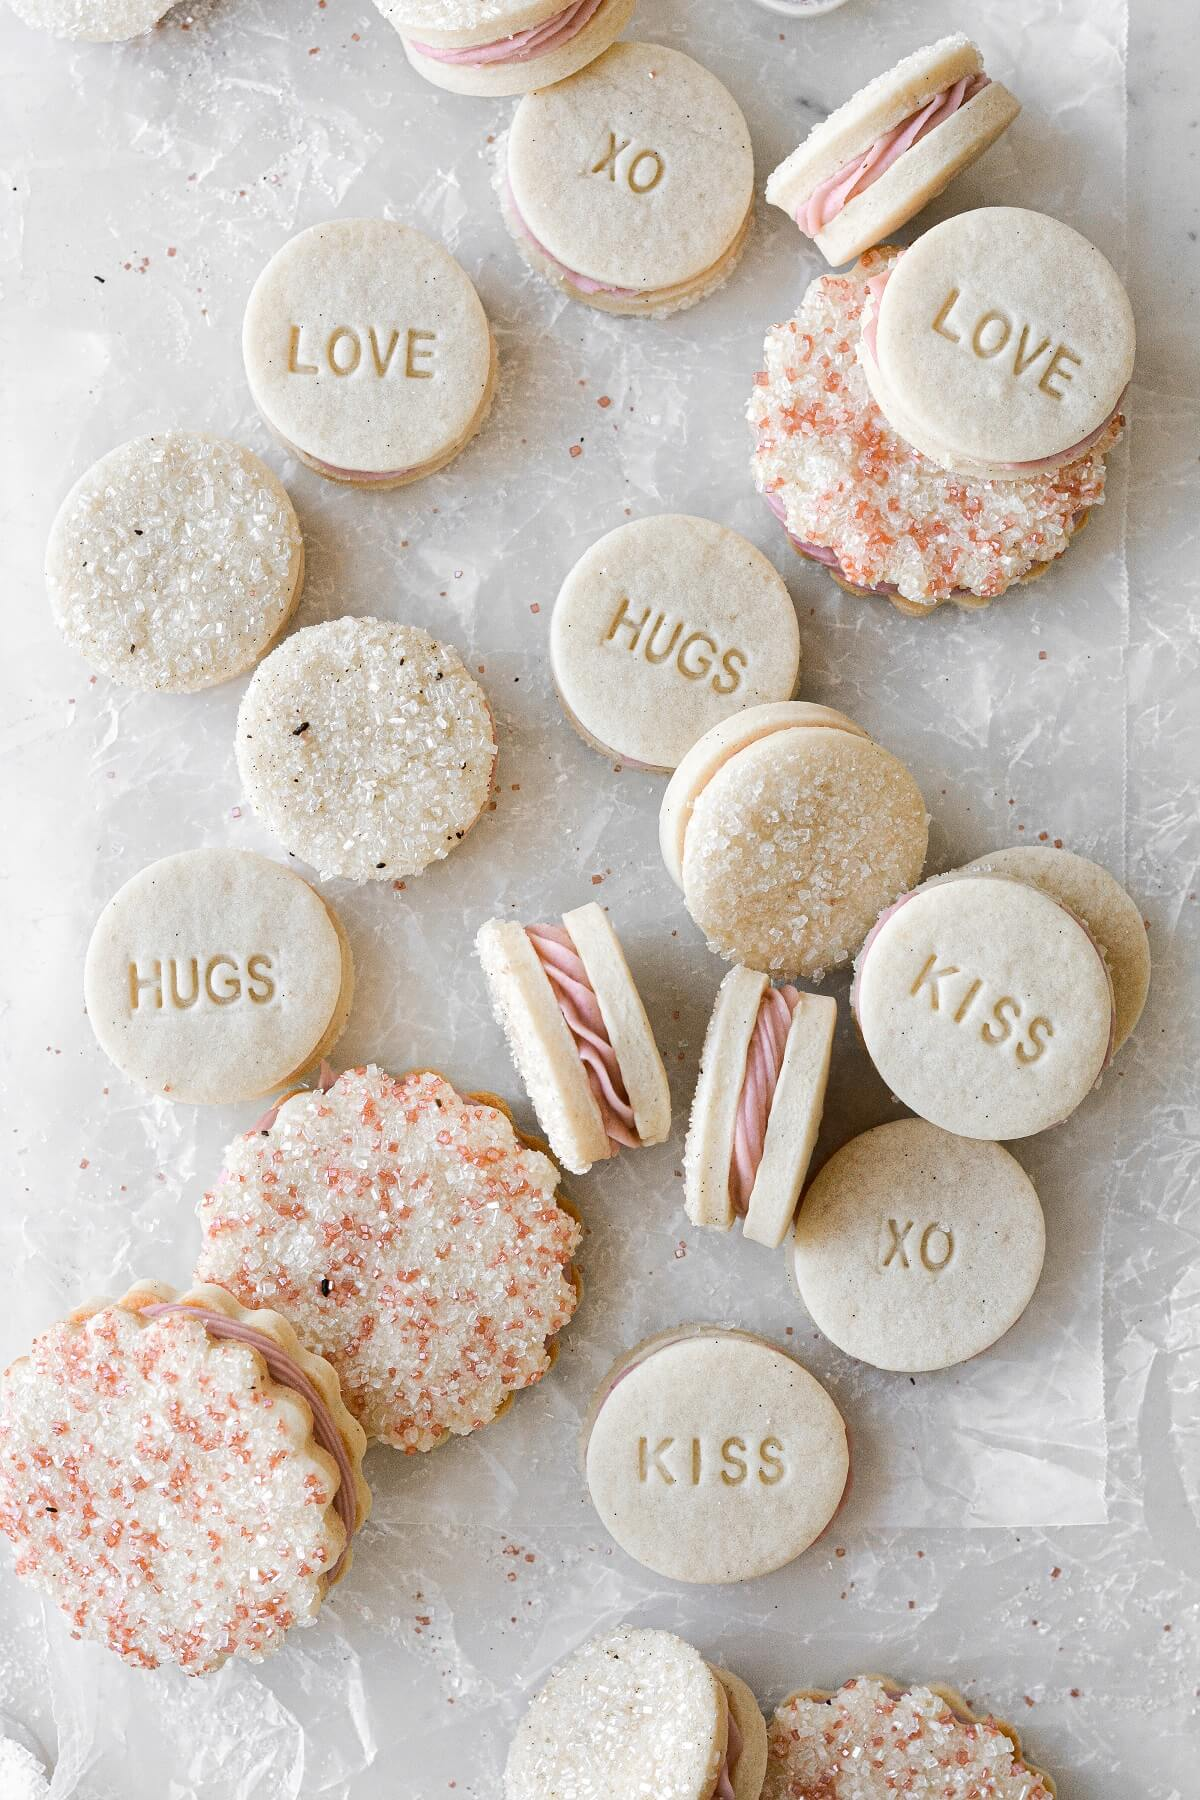 """Vanilla raspberry sandwich cookies, some with sparkling sugar and some stamped """"xo"""", """"hugs"""", """"kiss"""", and """"love"""".."""